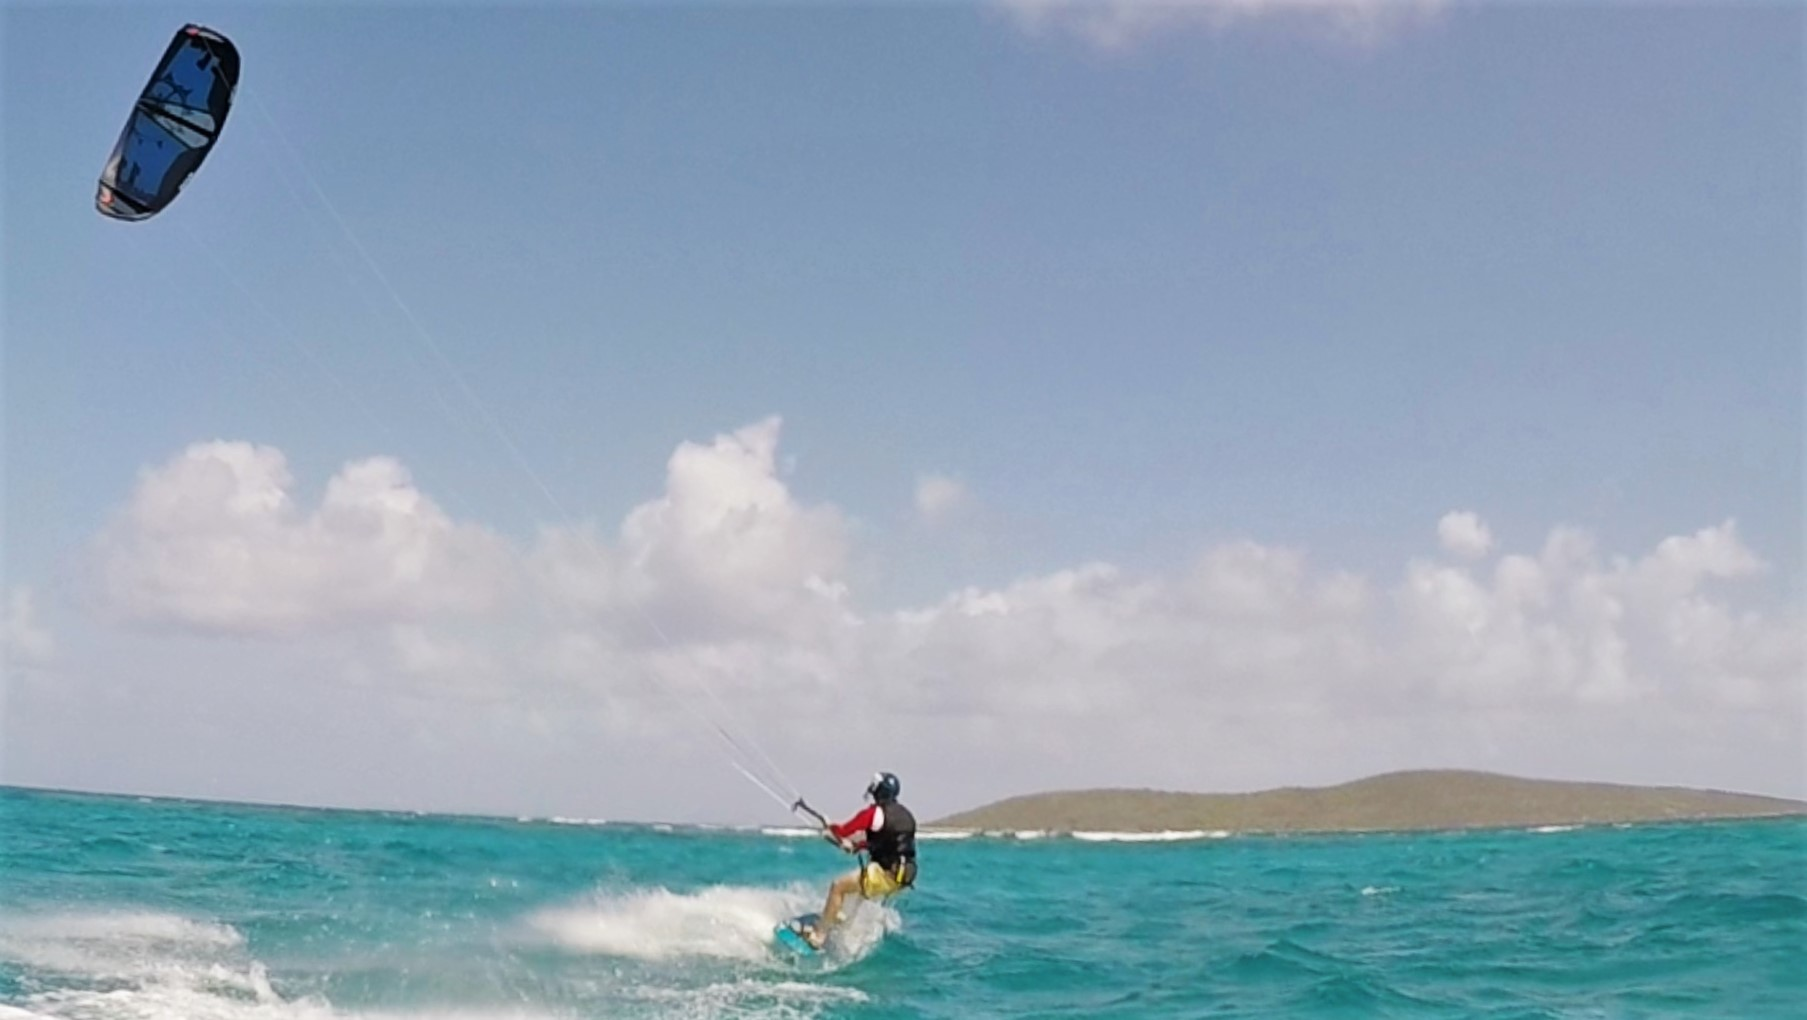 Kiteboarder cruising through the caribbean sea